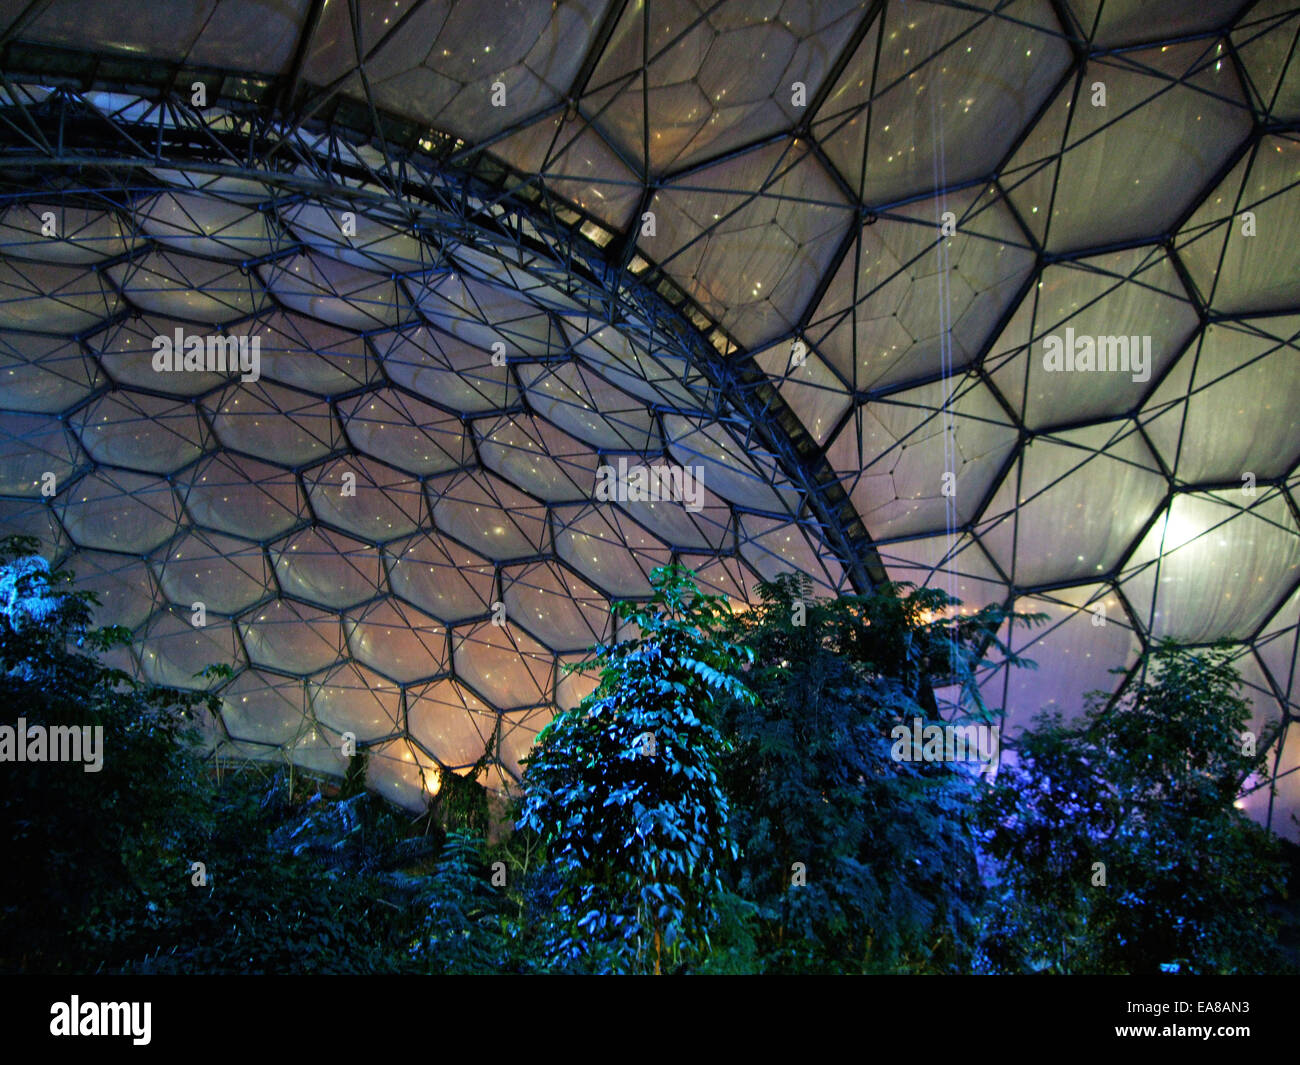 Inside The Flood Lit Humid Tropics Biome At Eden Project Christmas Time Night